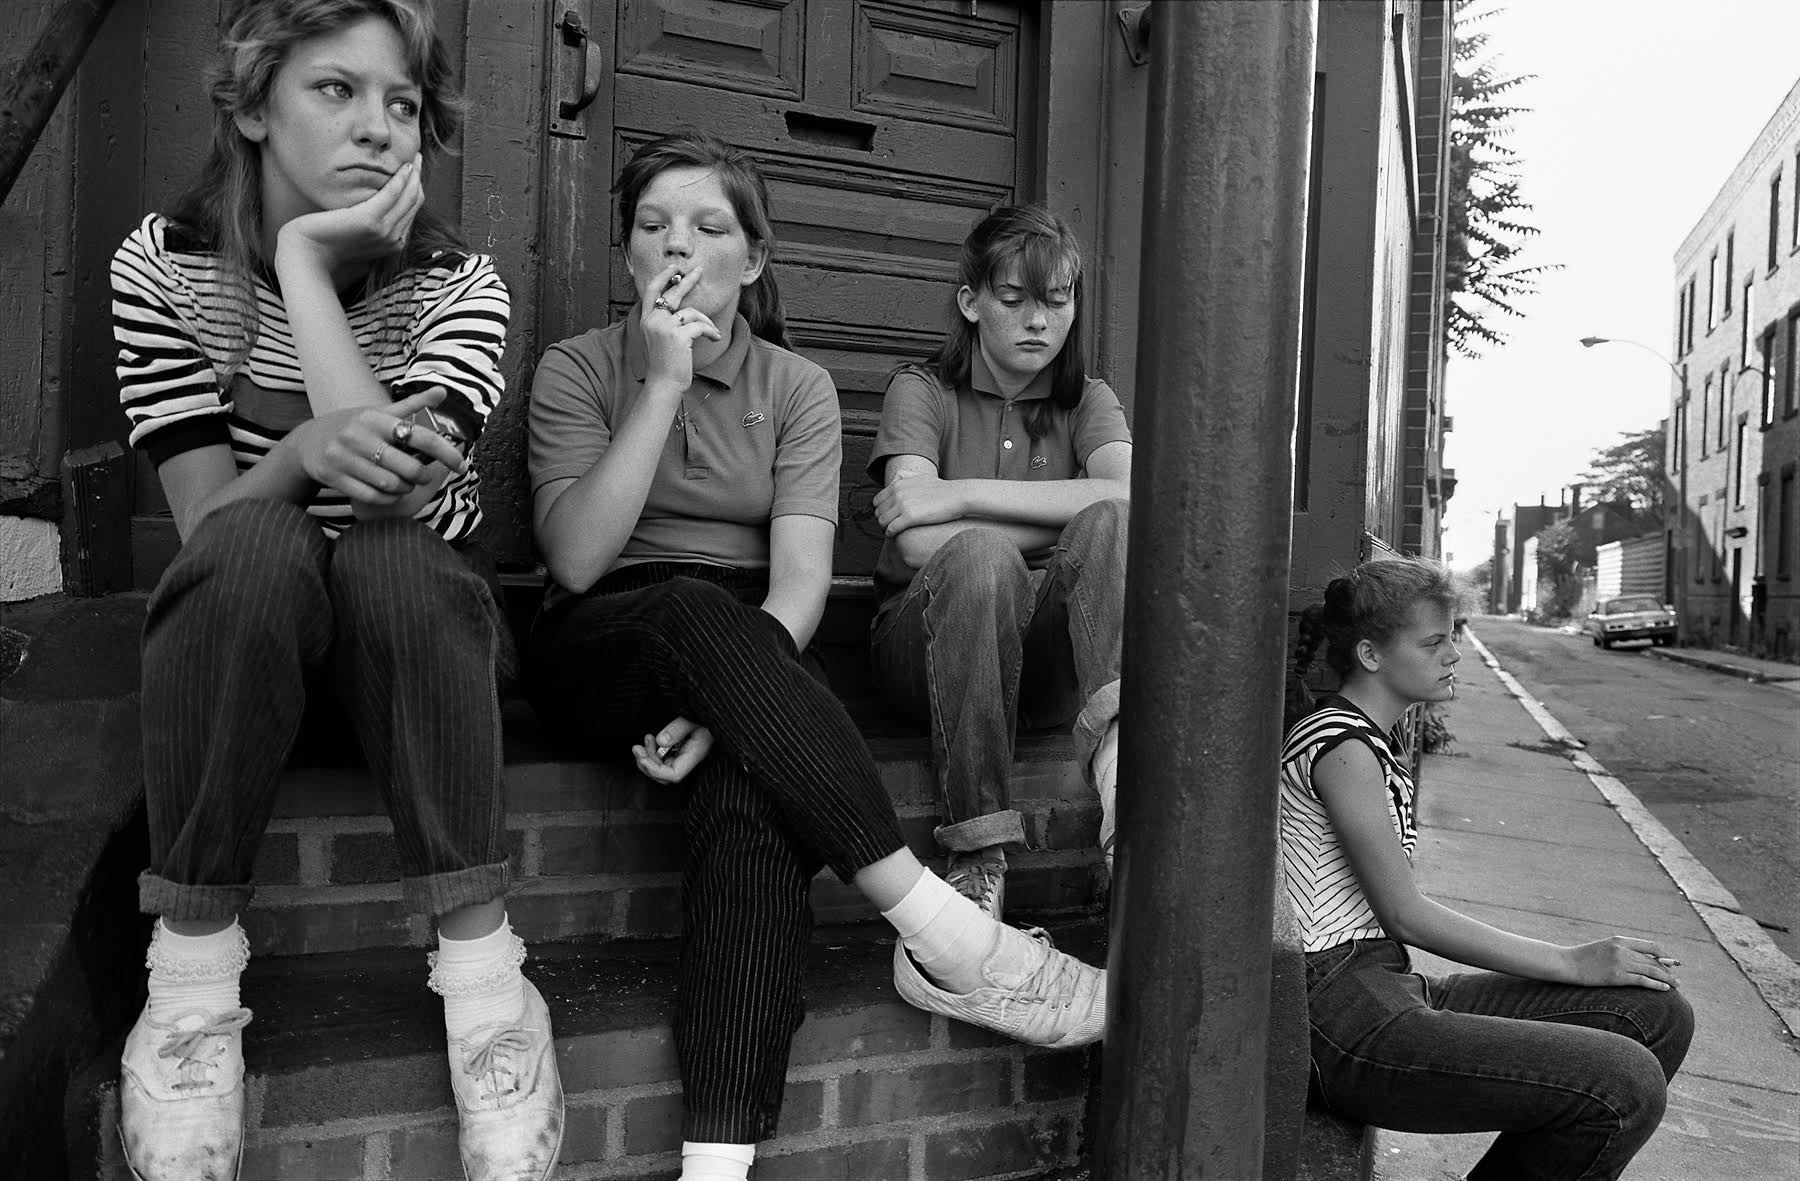 boredom and teenage angst in 80s america | read | i-D